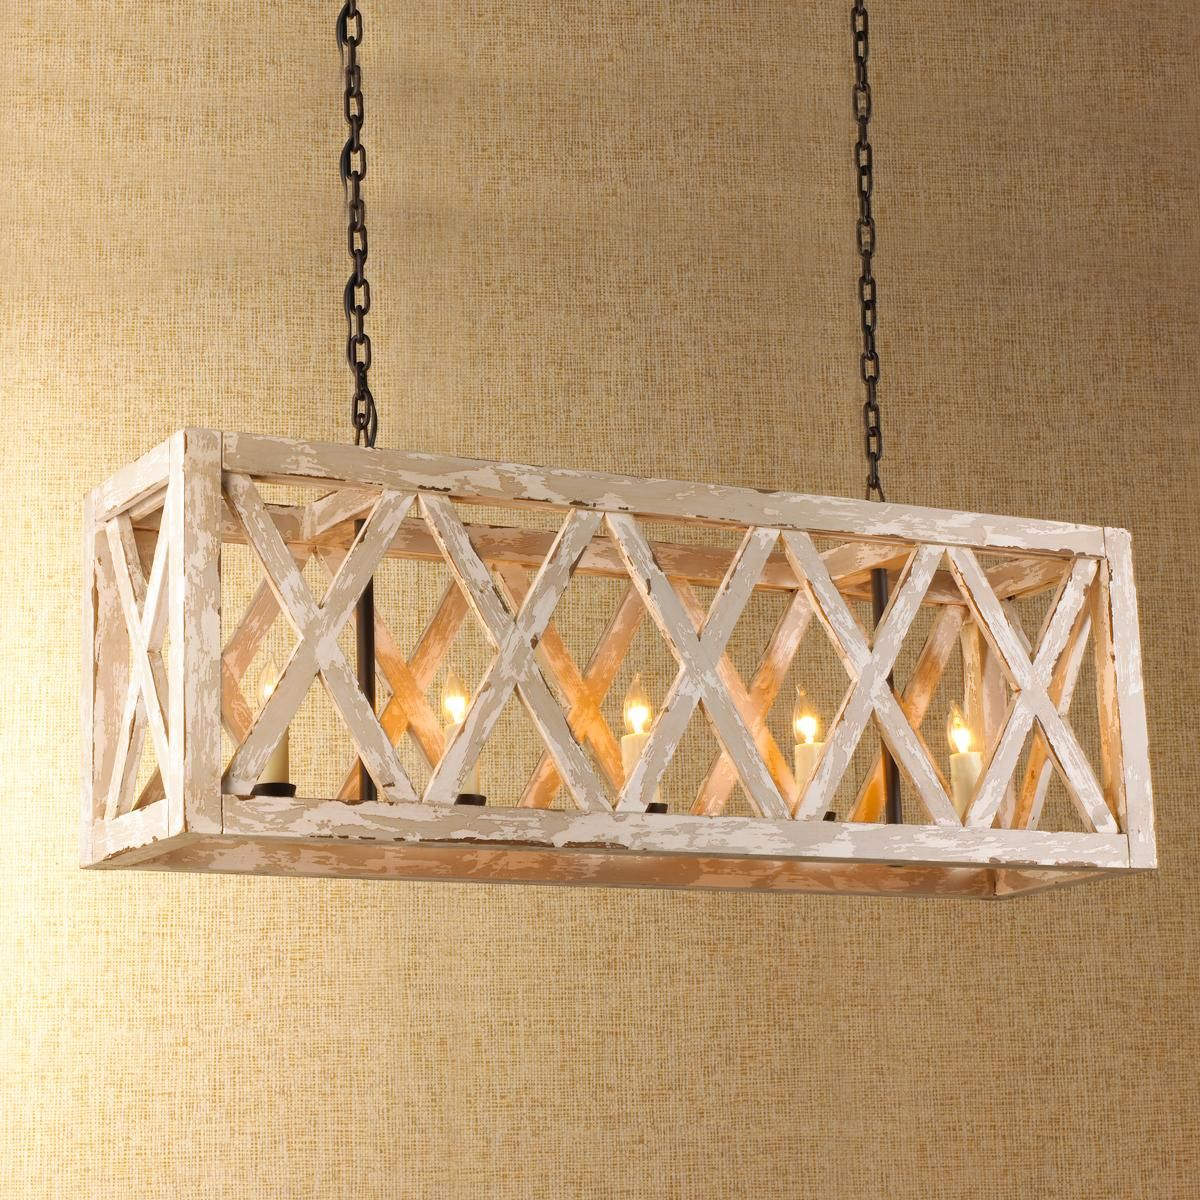 island chandelier lighting. 5 Light Wood Lattice Island Chandelier- A DIY Project! I Really Like This Chandelier Lighting M